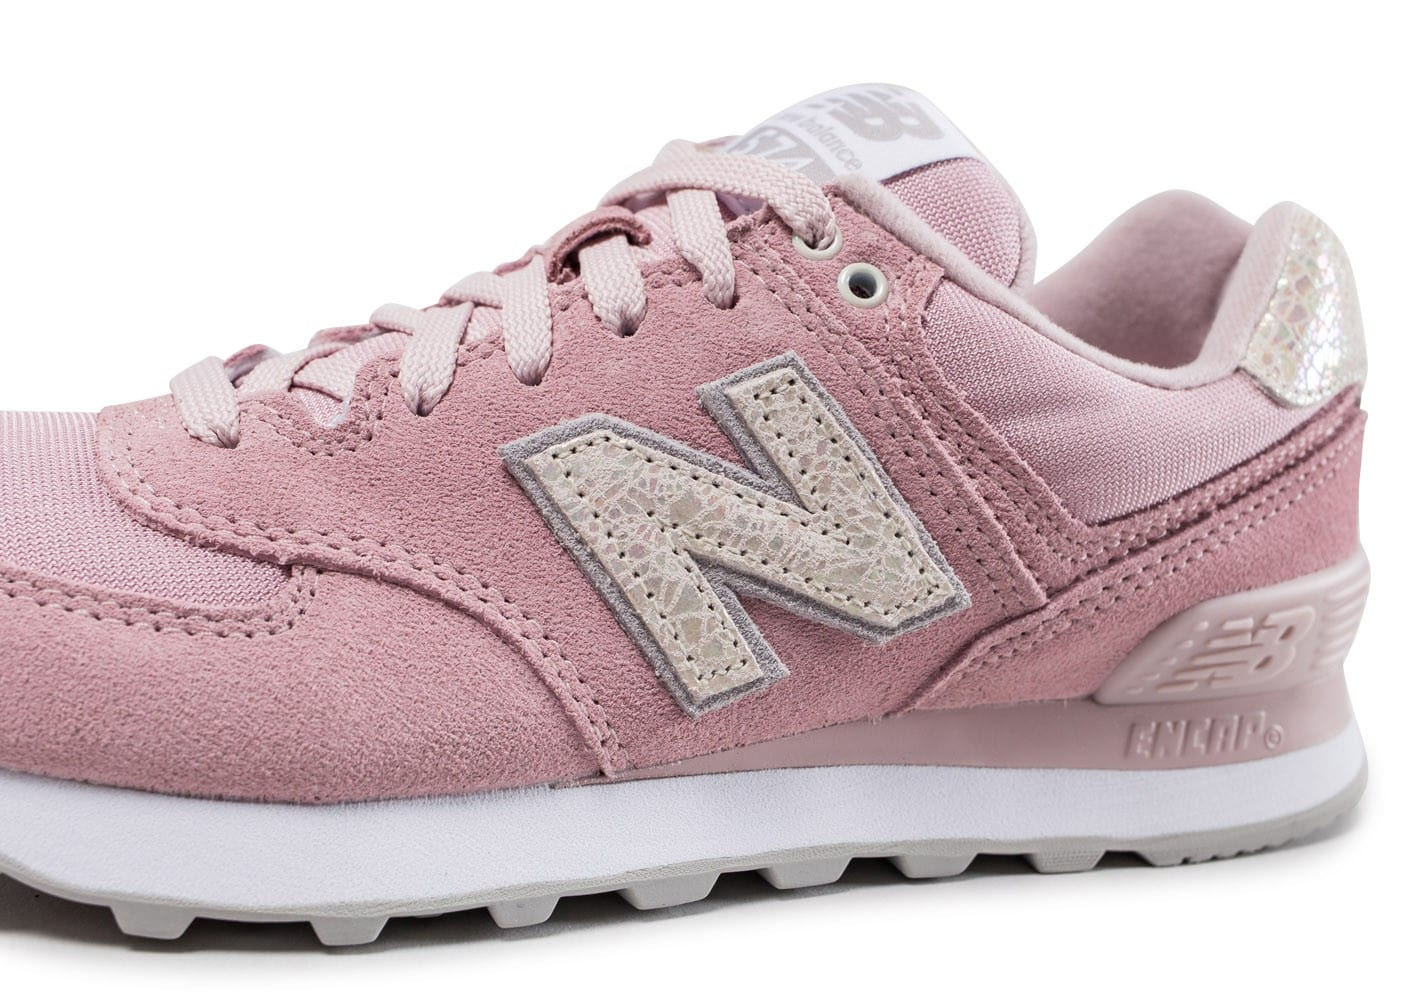 New Balance WL574 CIC rose - Chaussures Black Friday - Chausport